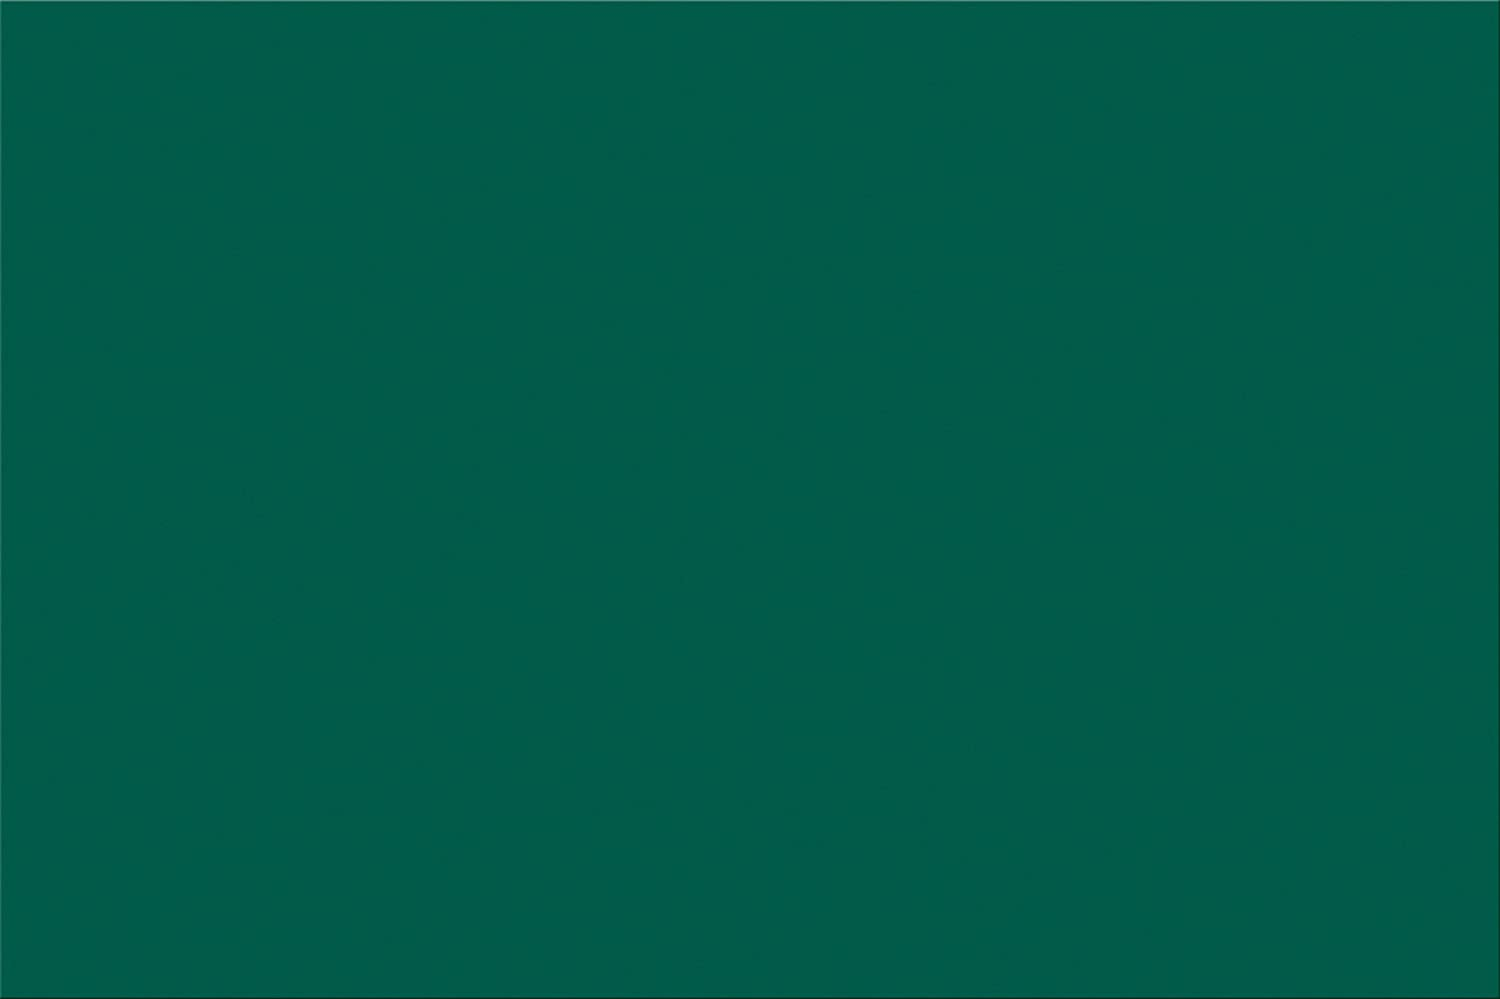 Pacon SunWorks Construction Paper, 12\' x 18\', 100-Count, Dark Green (7808) 12 x 18 Pacon Corp.